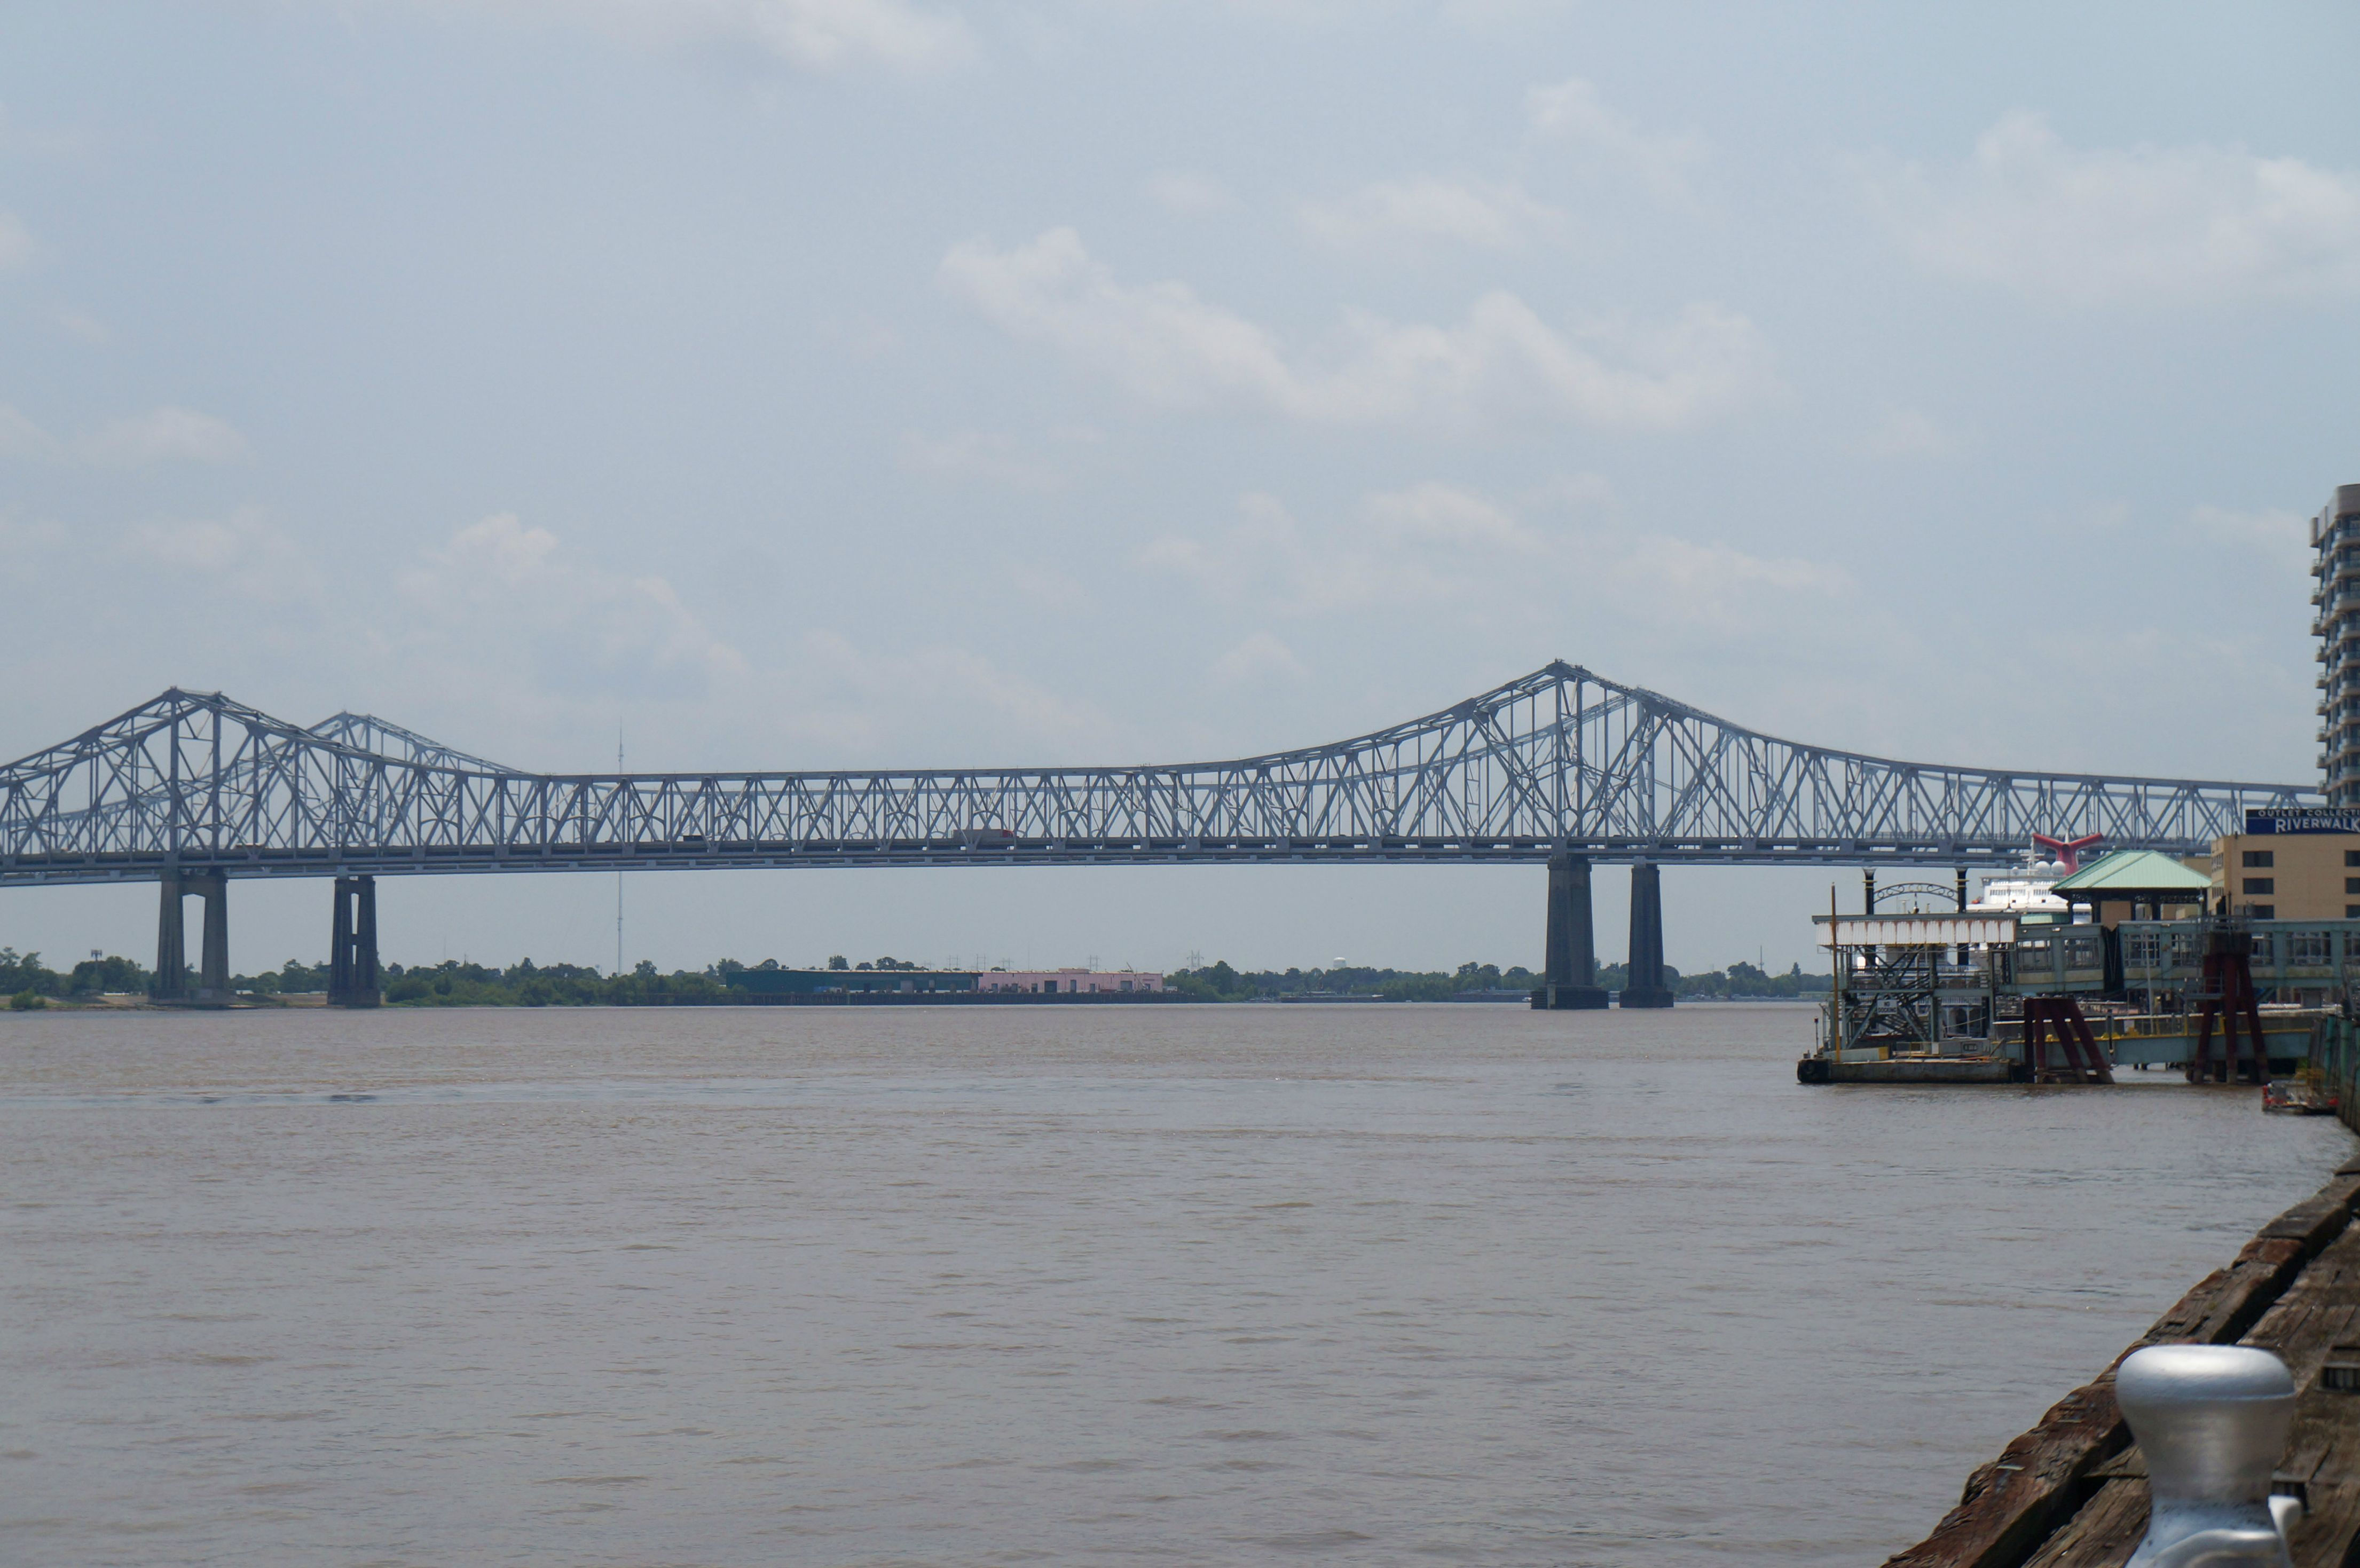 Mississippi river, crescent city connection, new orleans bridge